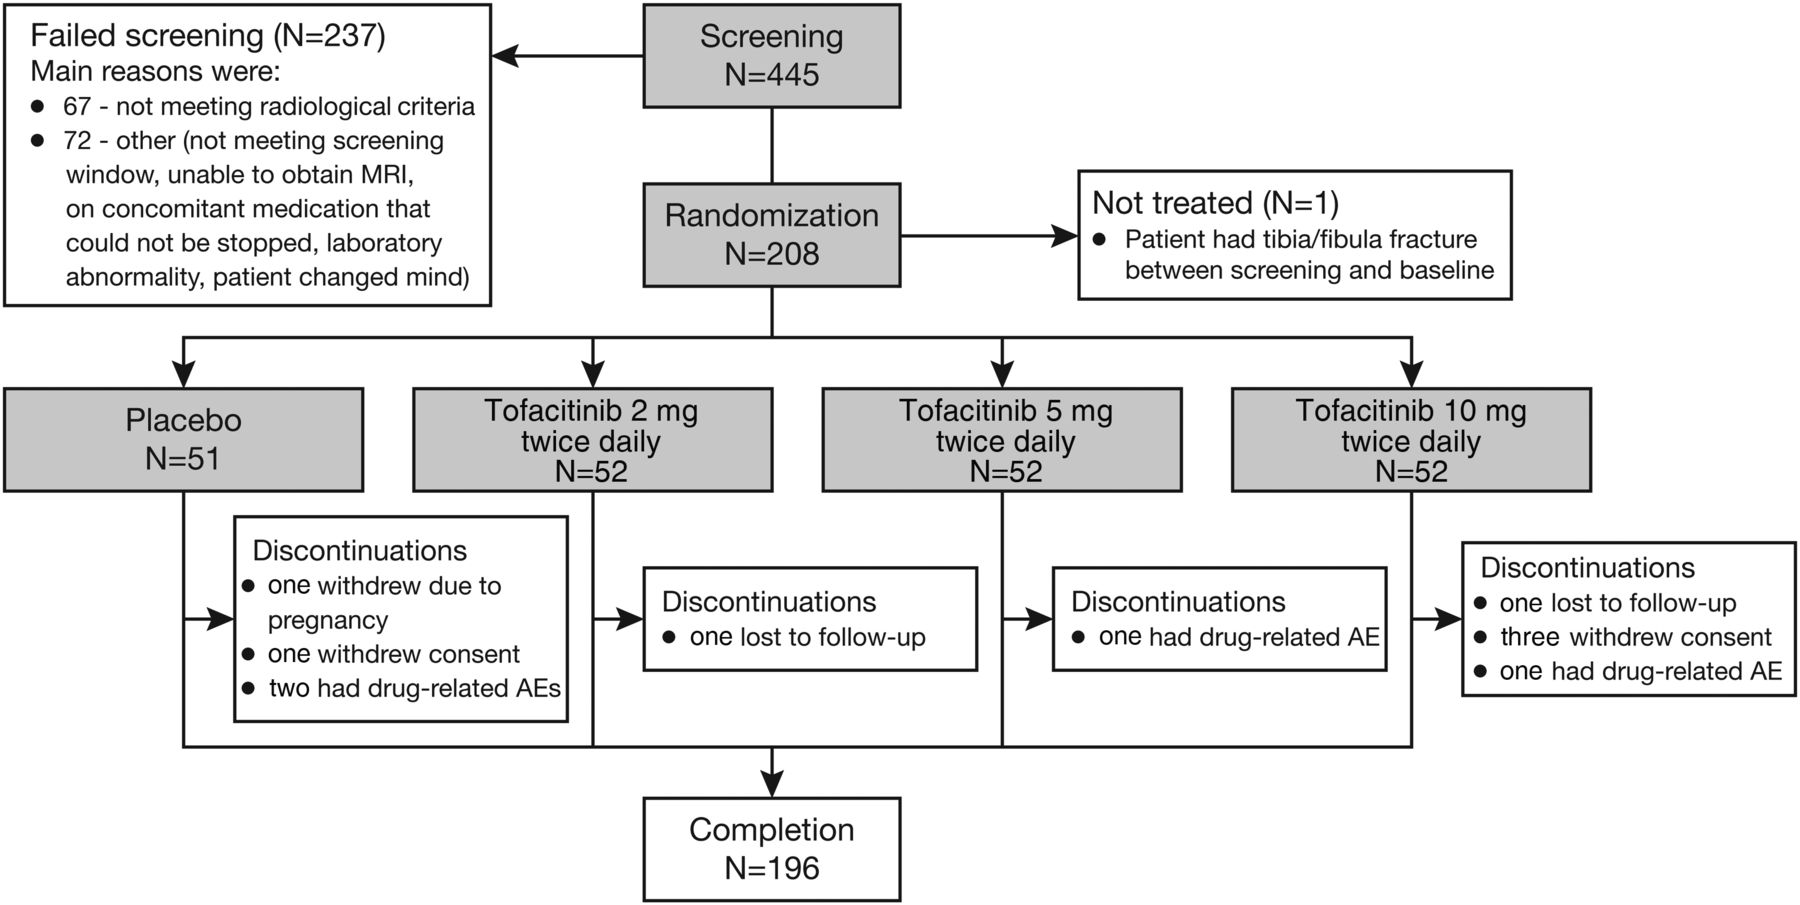 Tofacitinib in patients with ankylosing spondylitis: a phase